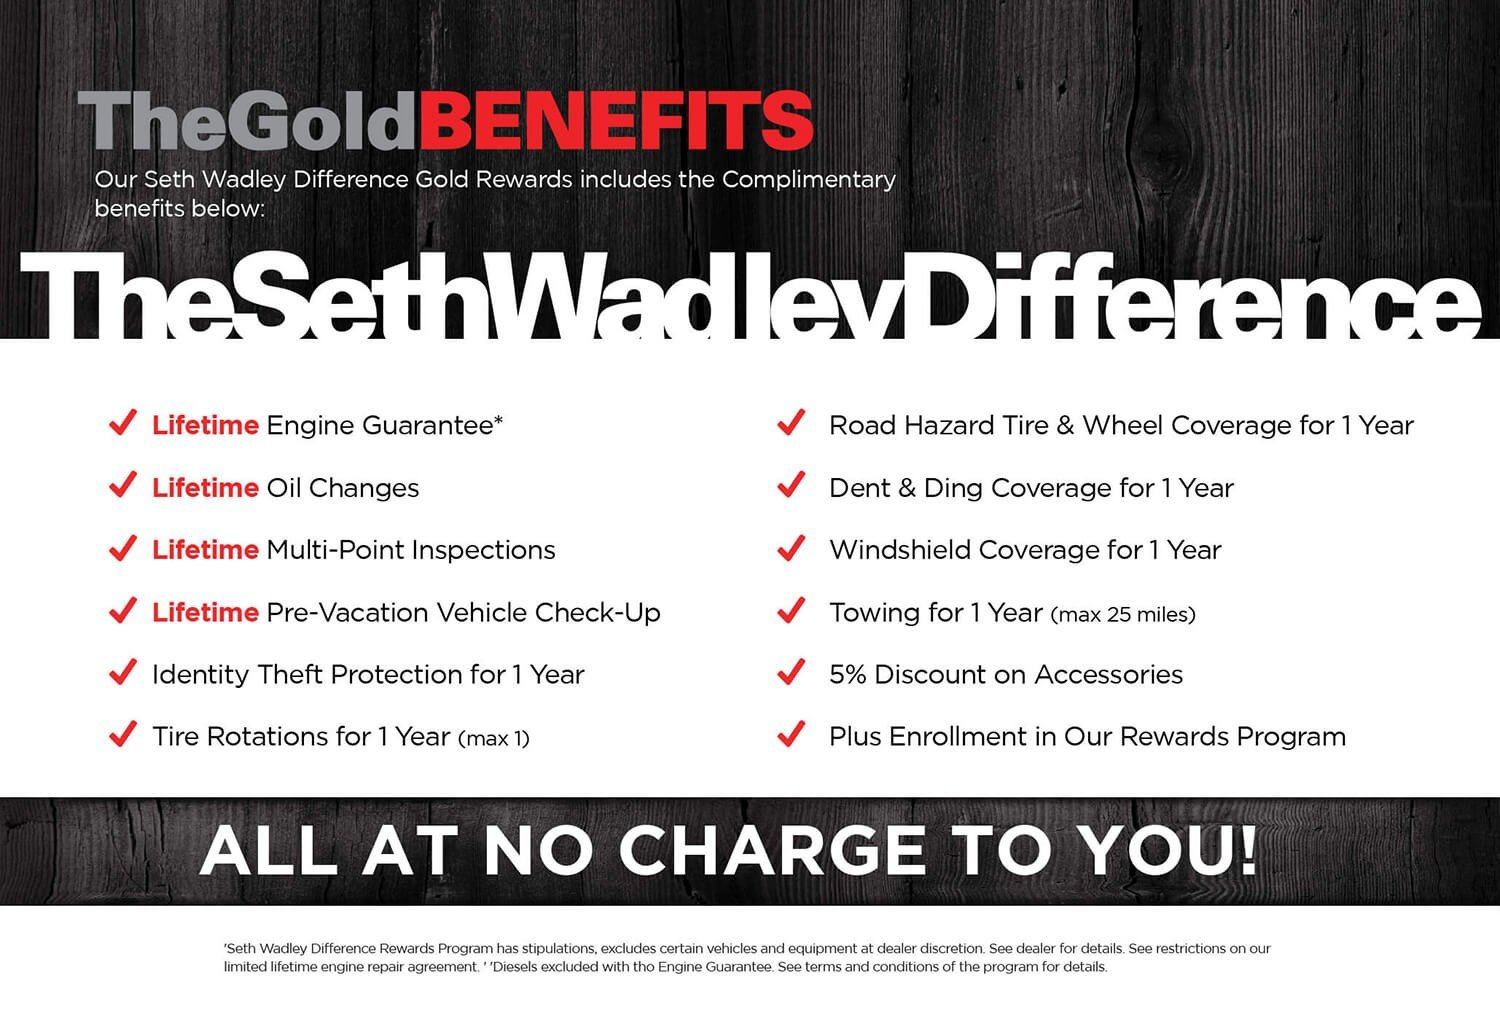 Seth Wadley Gold Benefits